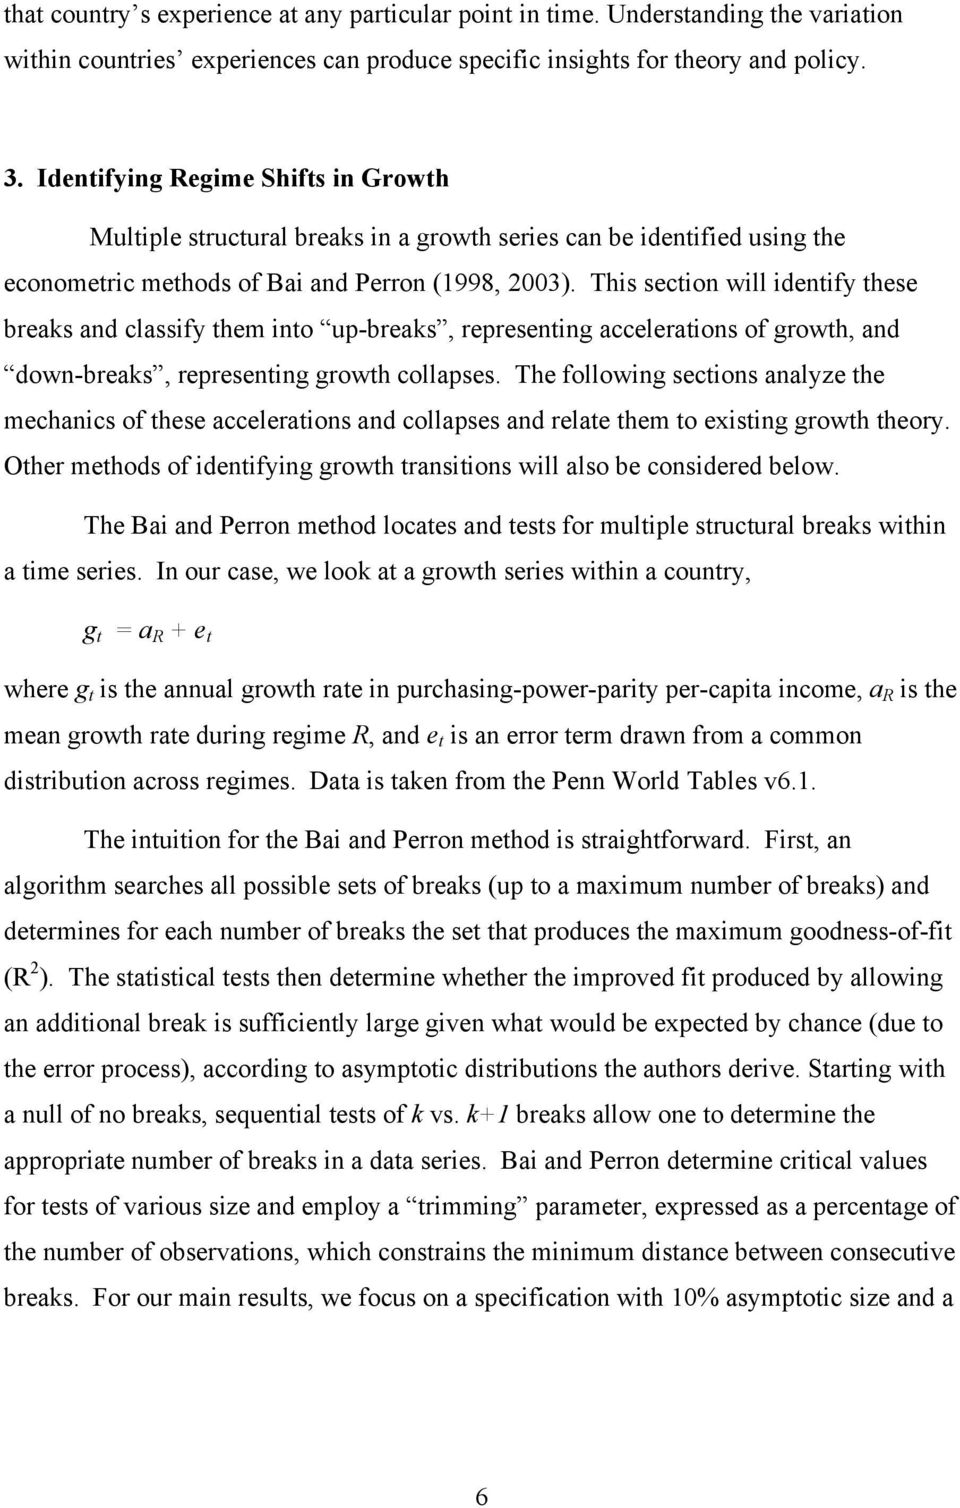 This section will identify these breaks and classify them into up-breaks, representing accelerations of growth, and down-breaks, representing growth collapses.